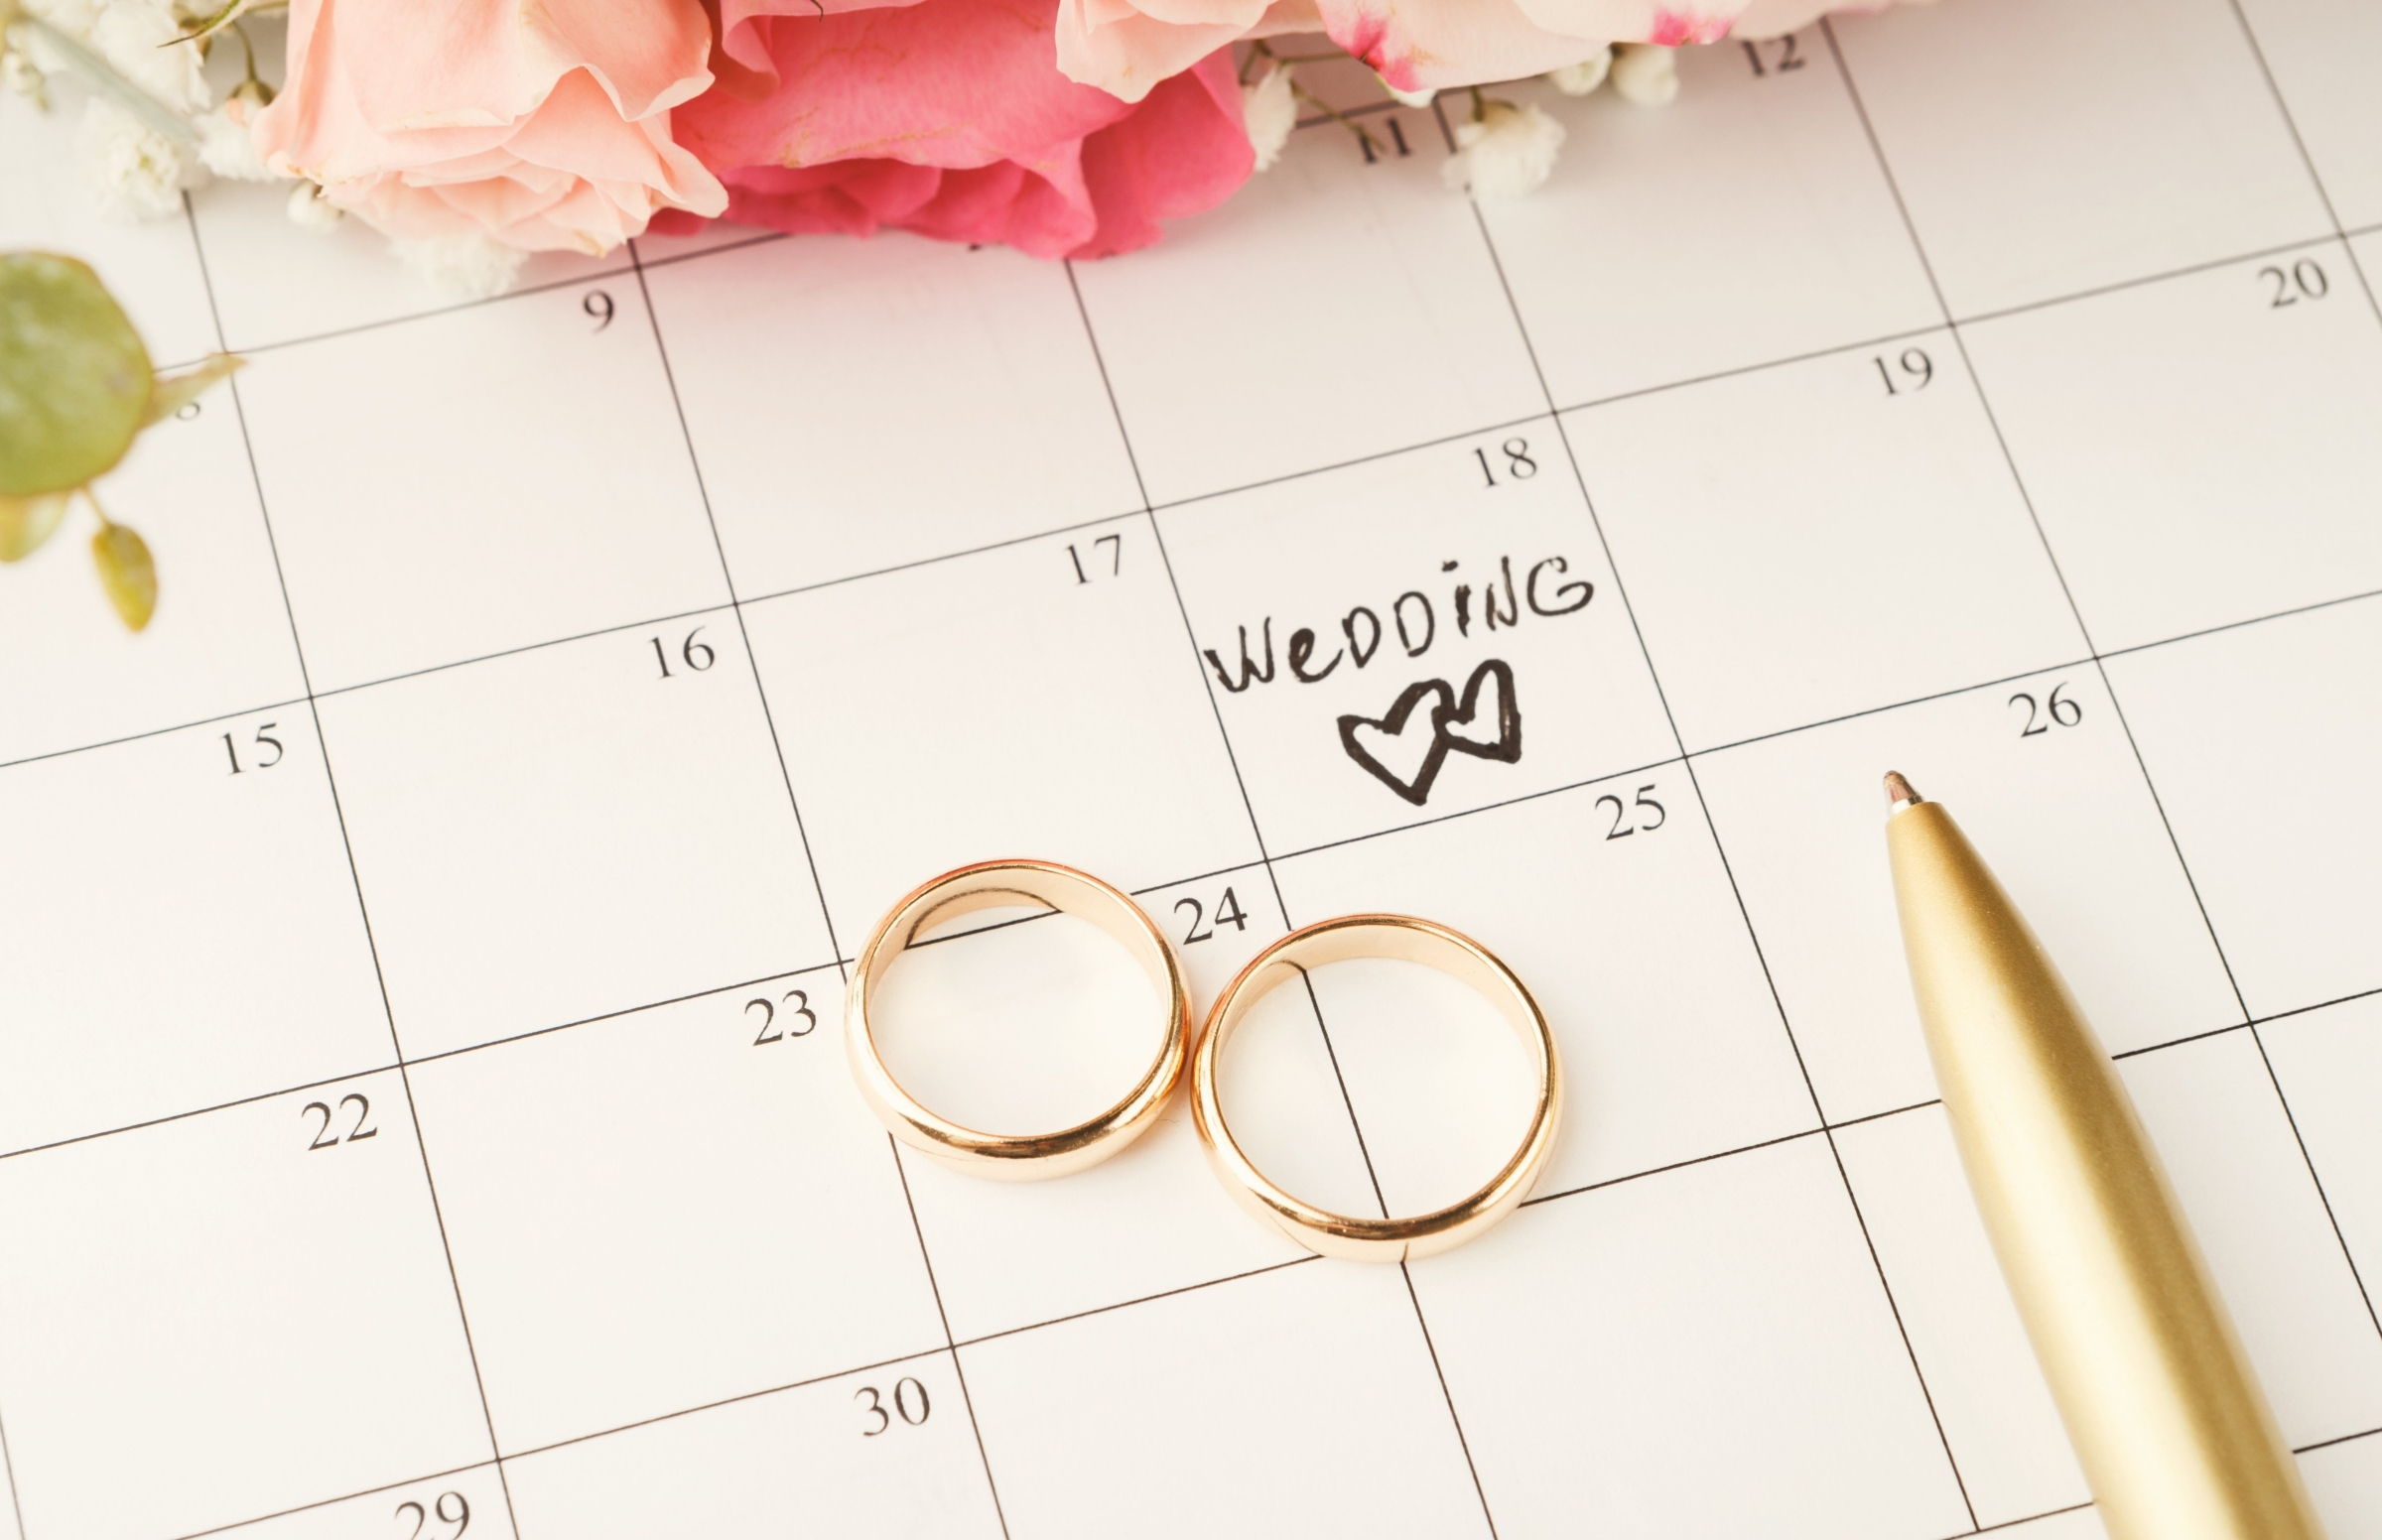 Planning calendar with gold wedding rings